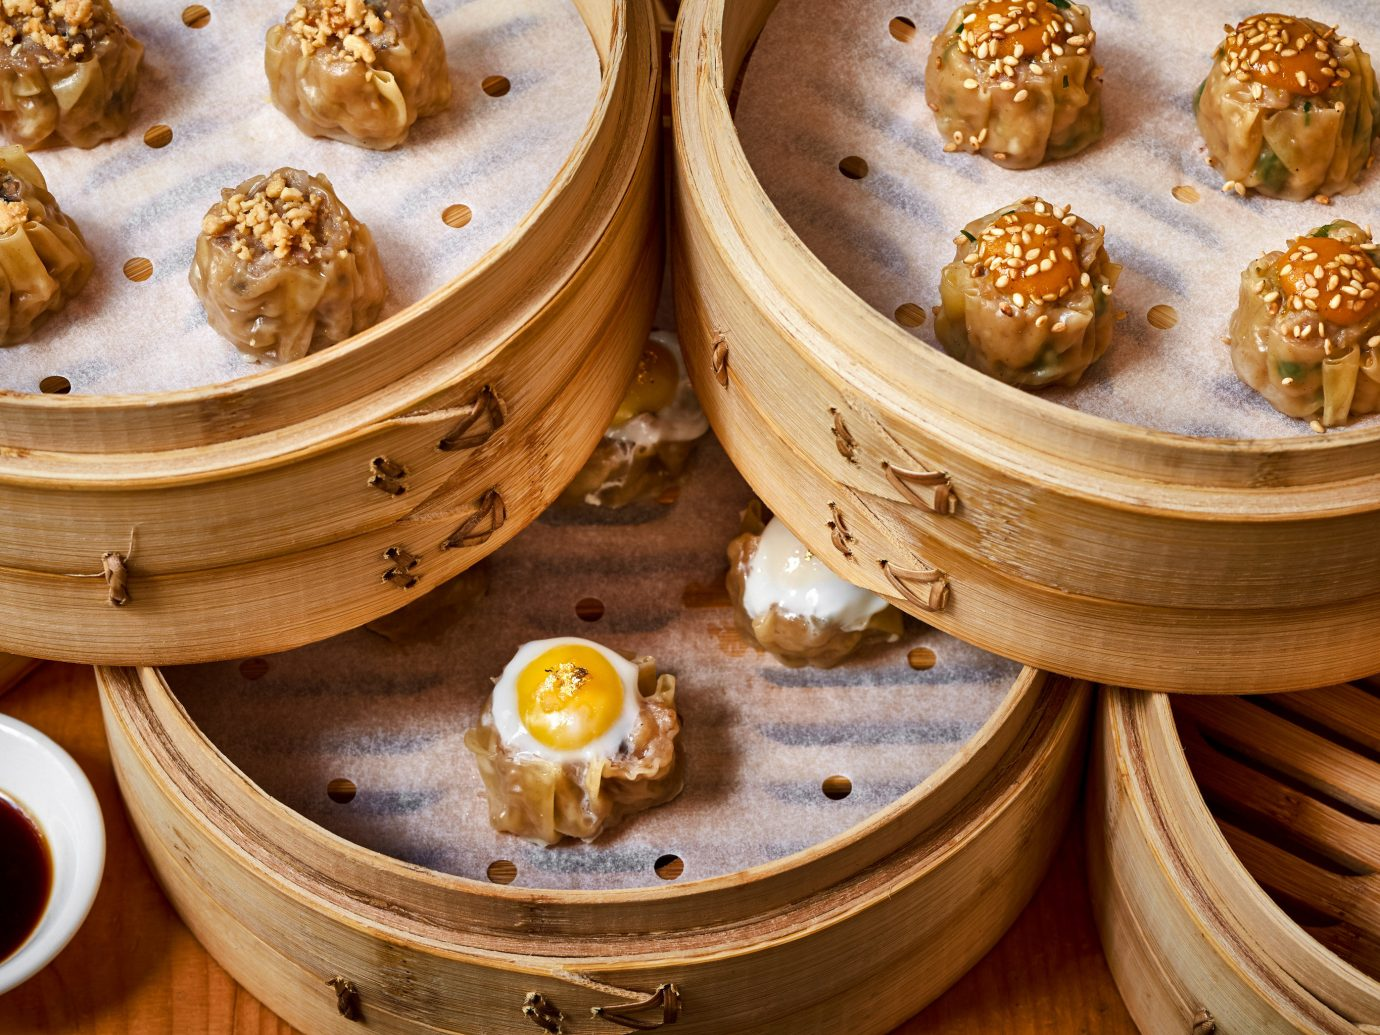 Food + Drink dim sum food dish cuisine chinese food dim sim xiaolongbao finger food asian food wooden mongolian food baozi commodity baking several